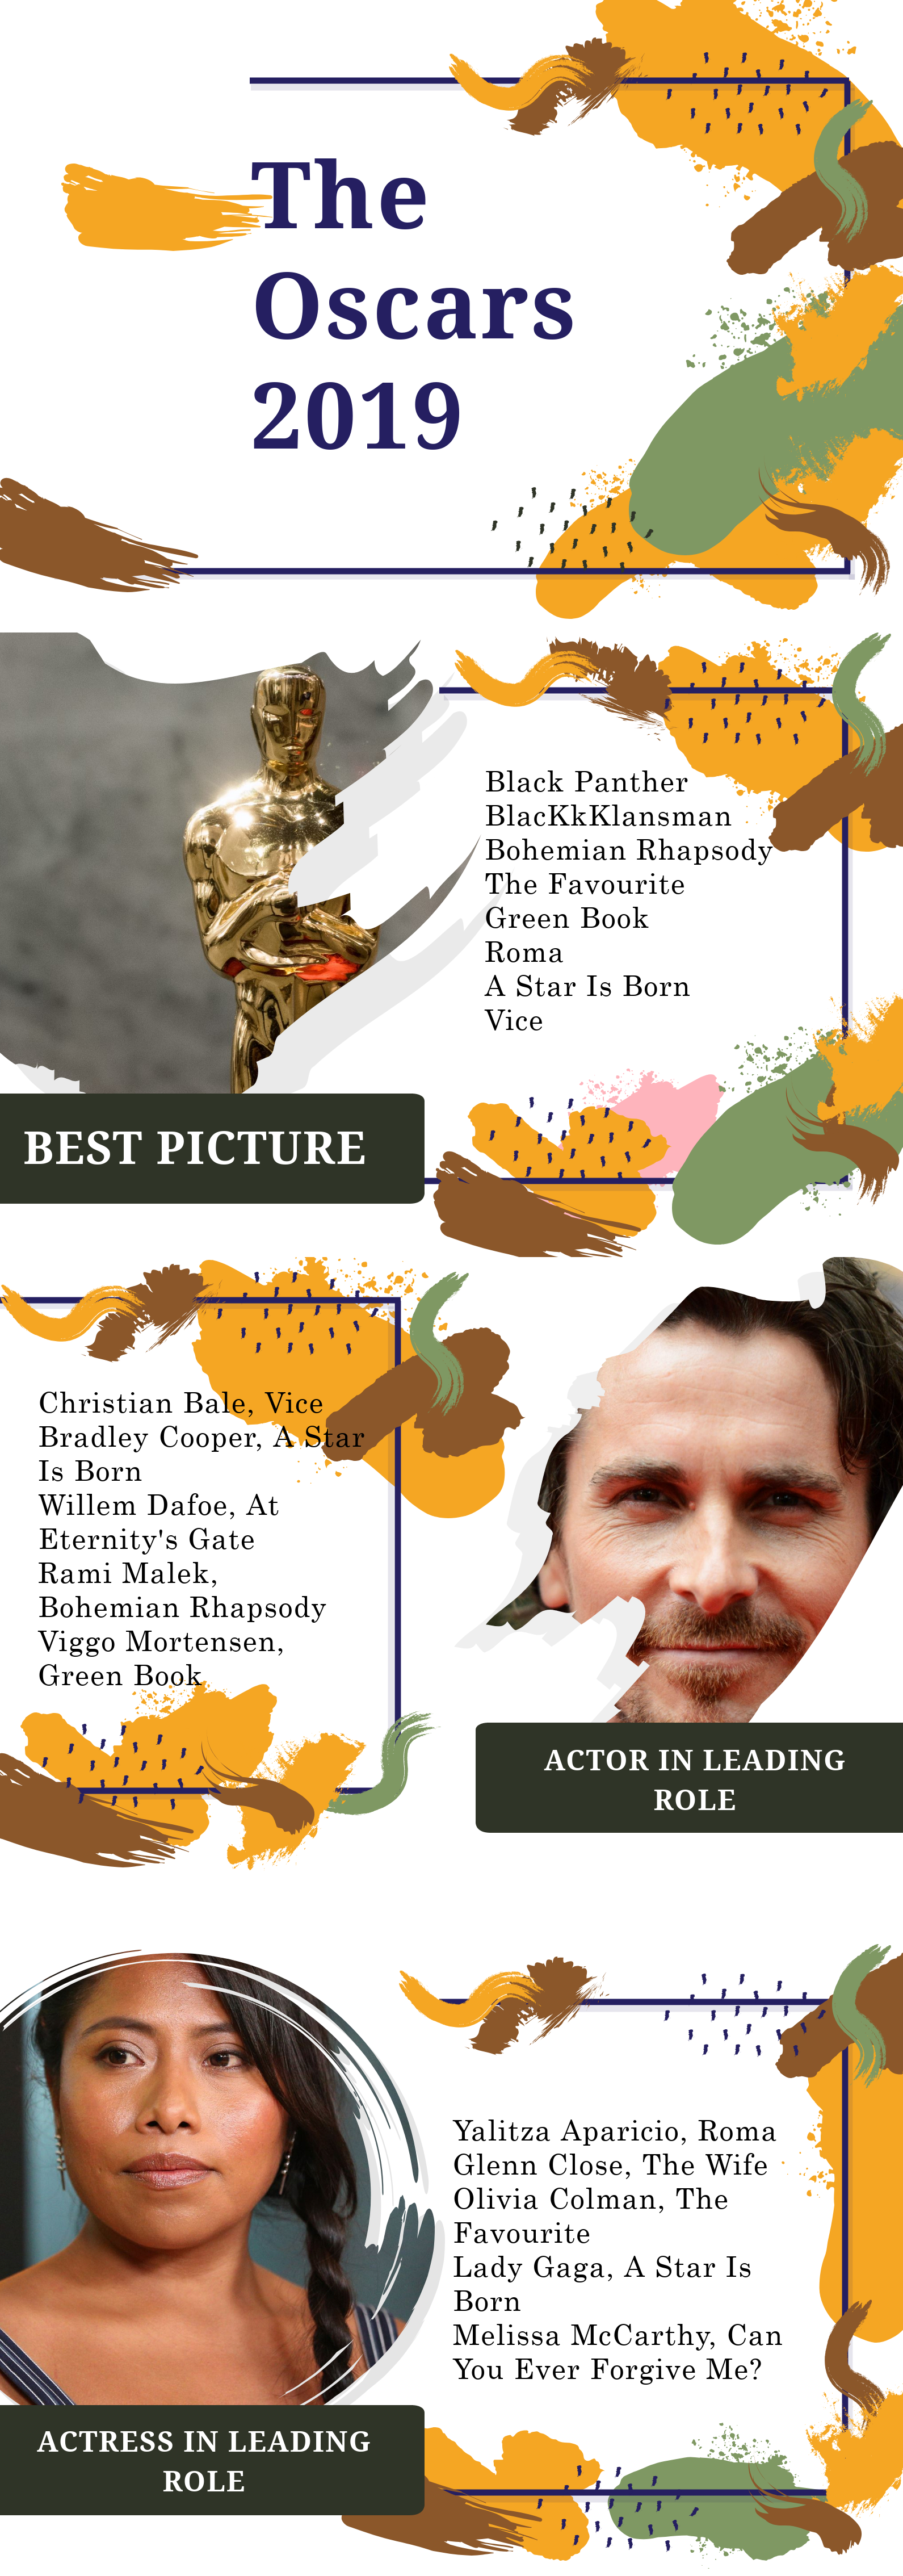 Oscars Nominations Graphic. Credit: Ben Malandrinos